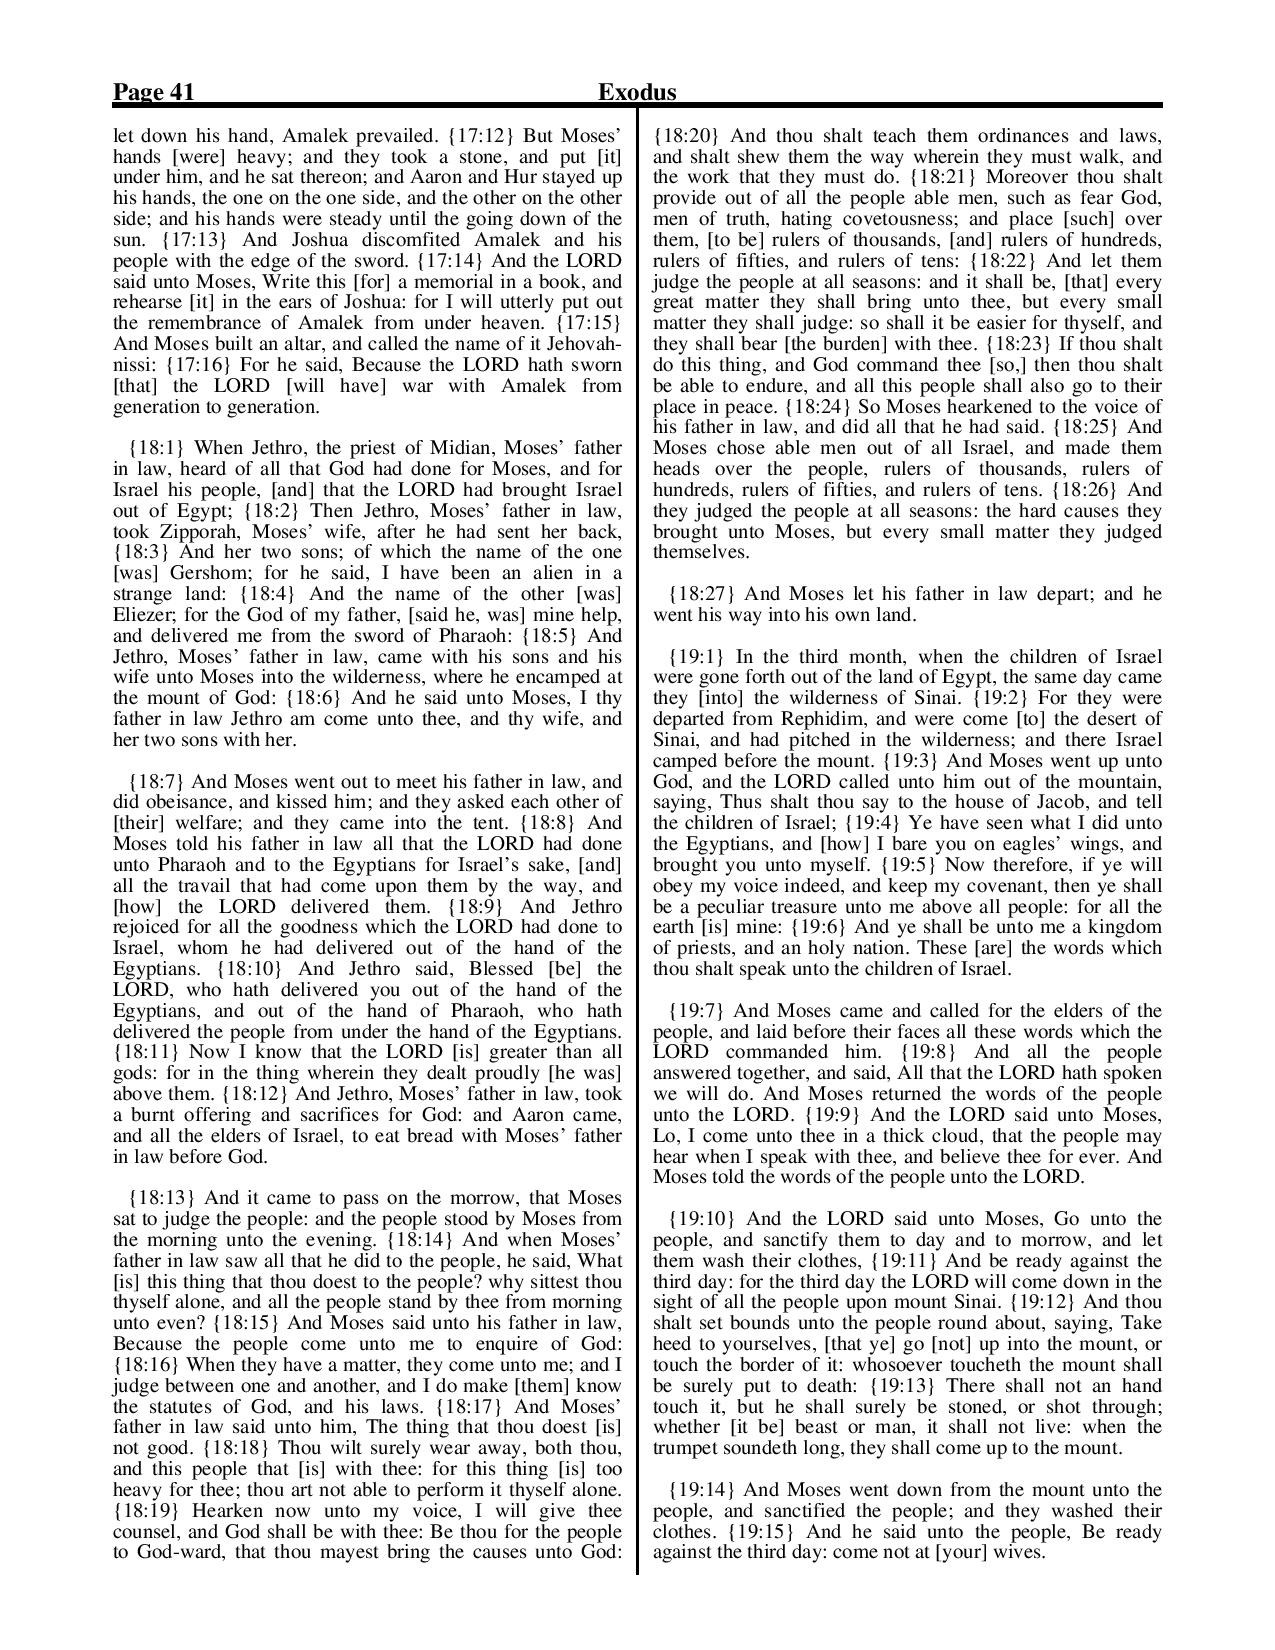 King-James-Bible-KJV-Bible-PDF-page-062